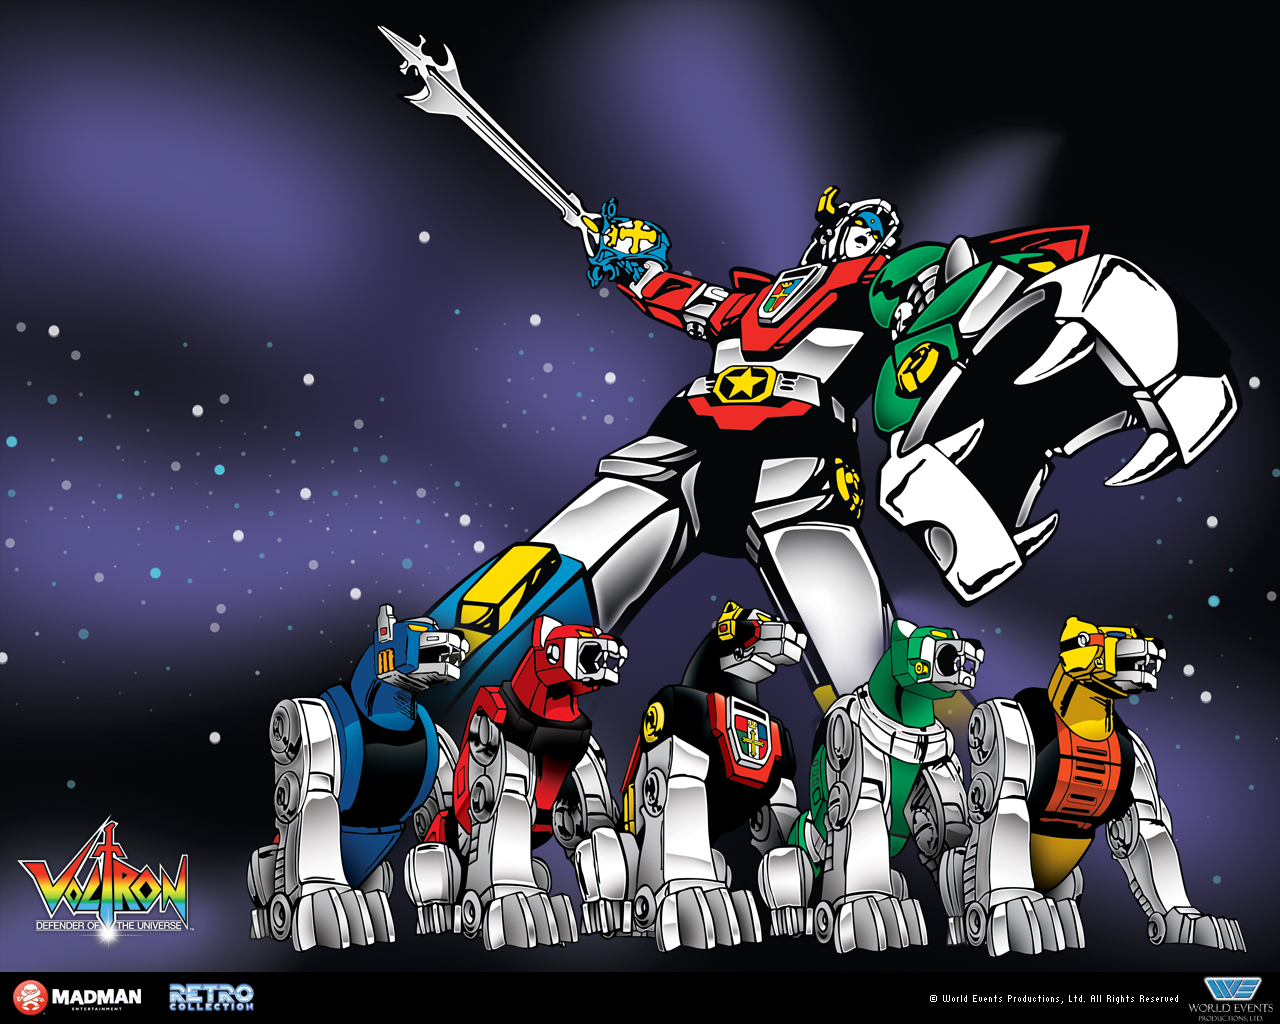 A 'Voltron' artwork is seen in this photo. Photo: WEP